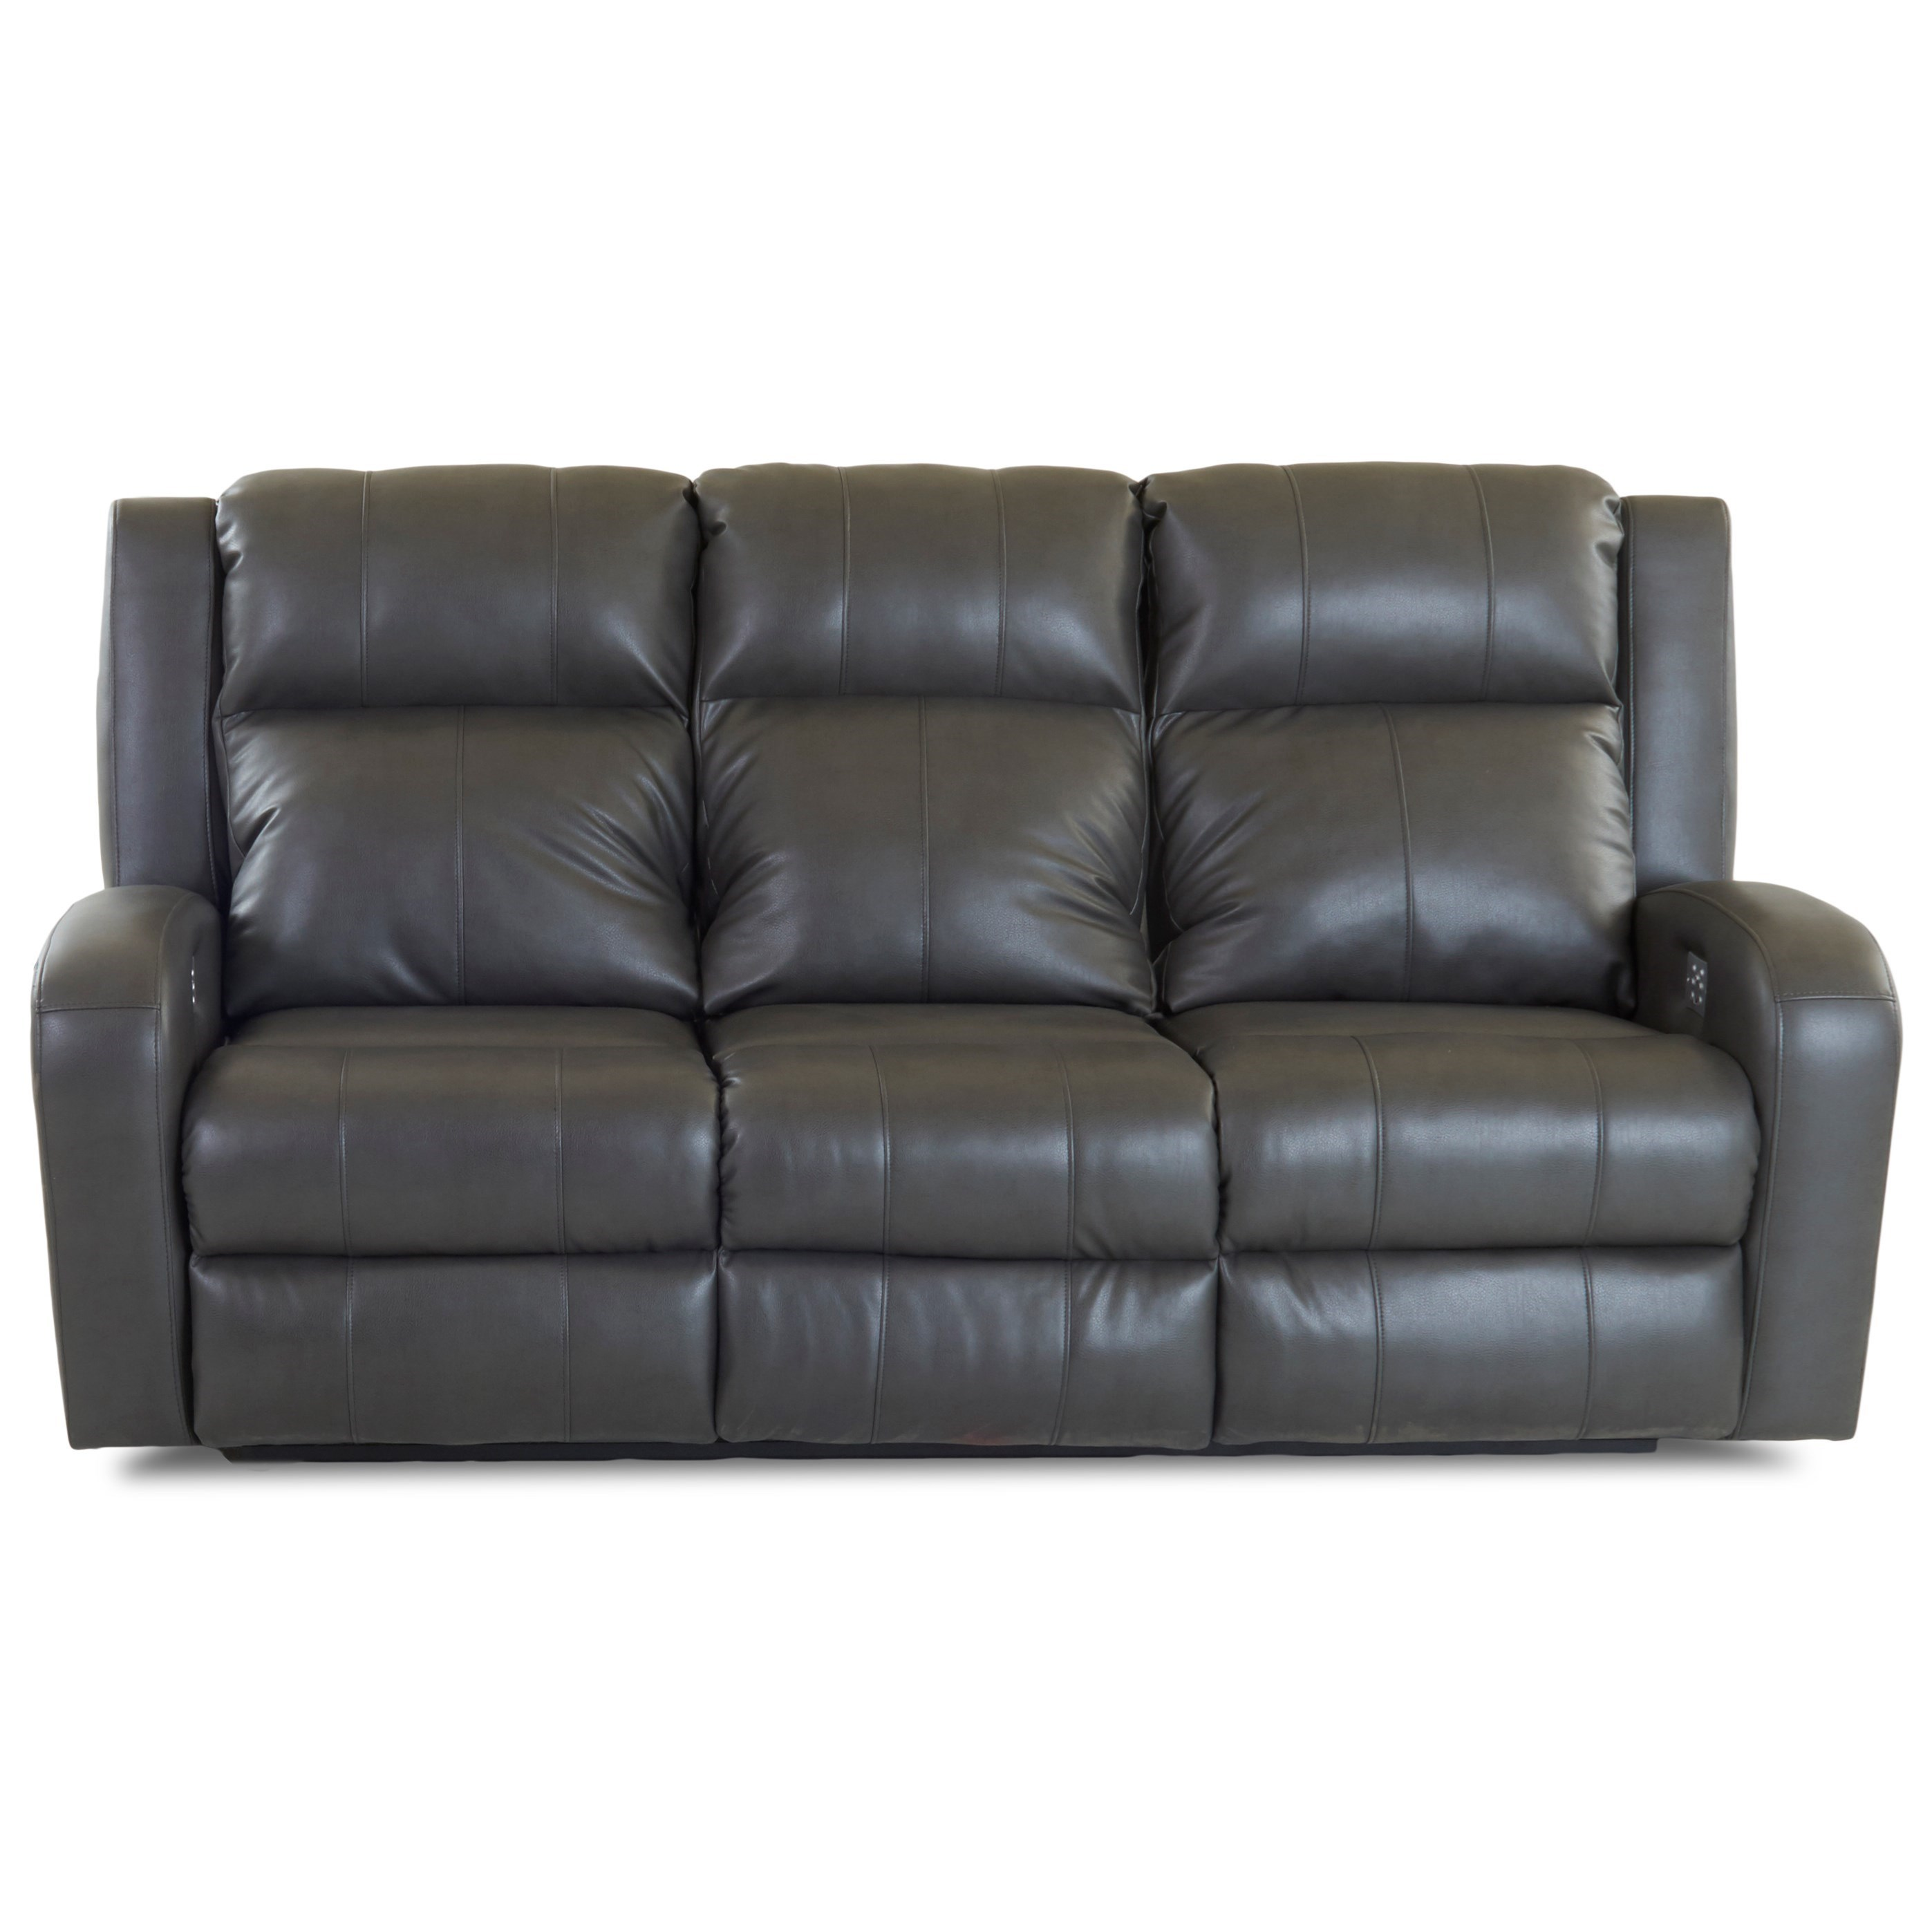 Casual Power Reclining Sofa with Power Headrests and Power Lumbar